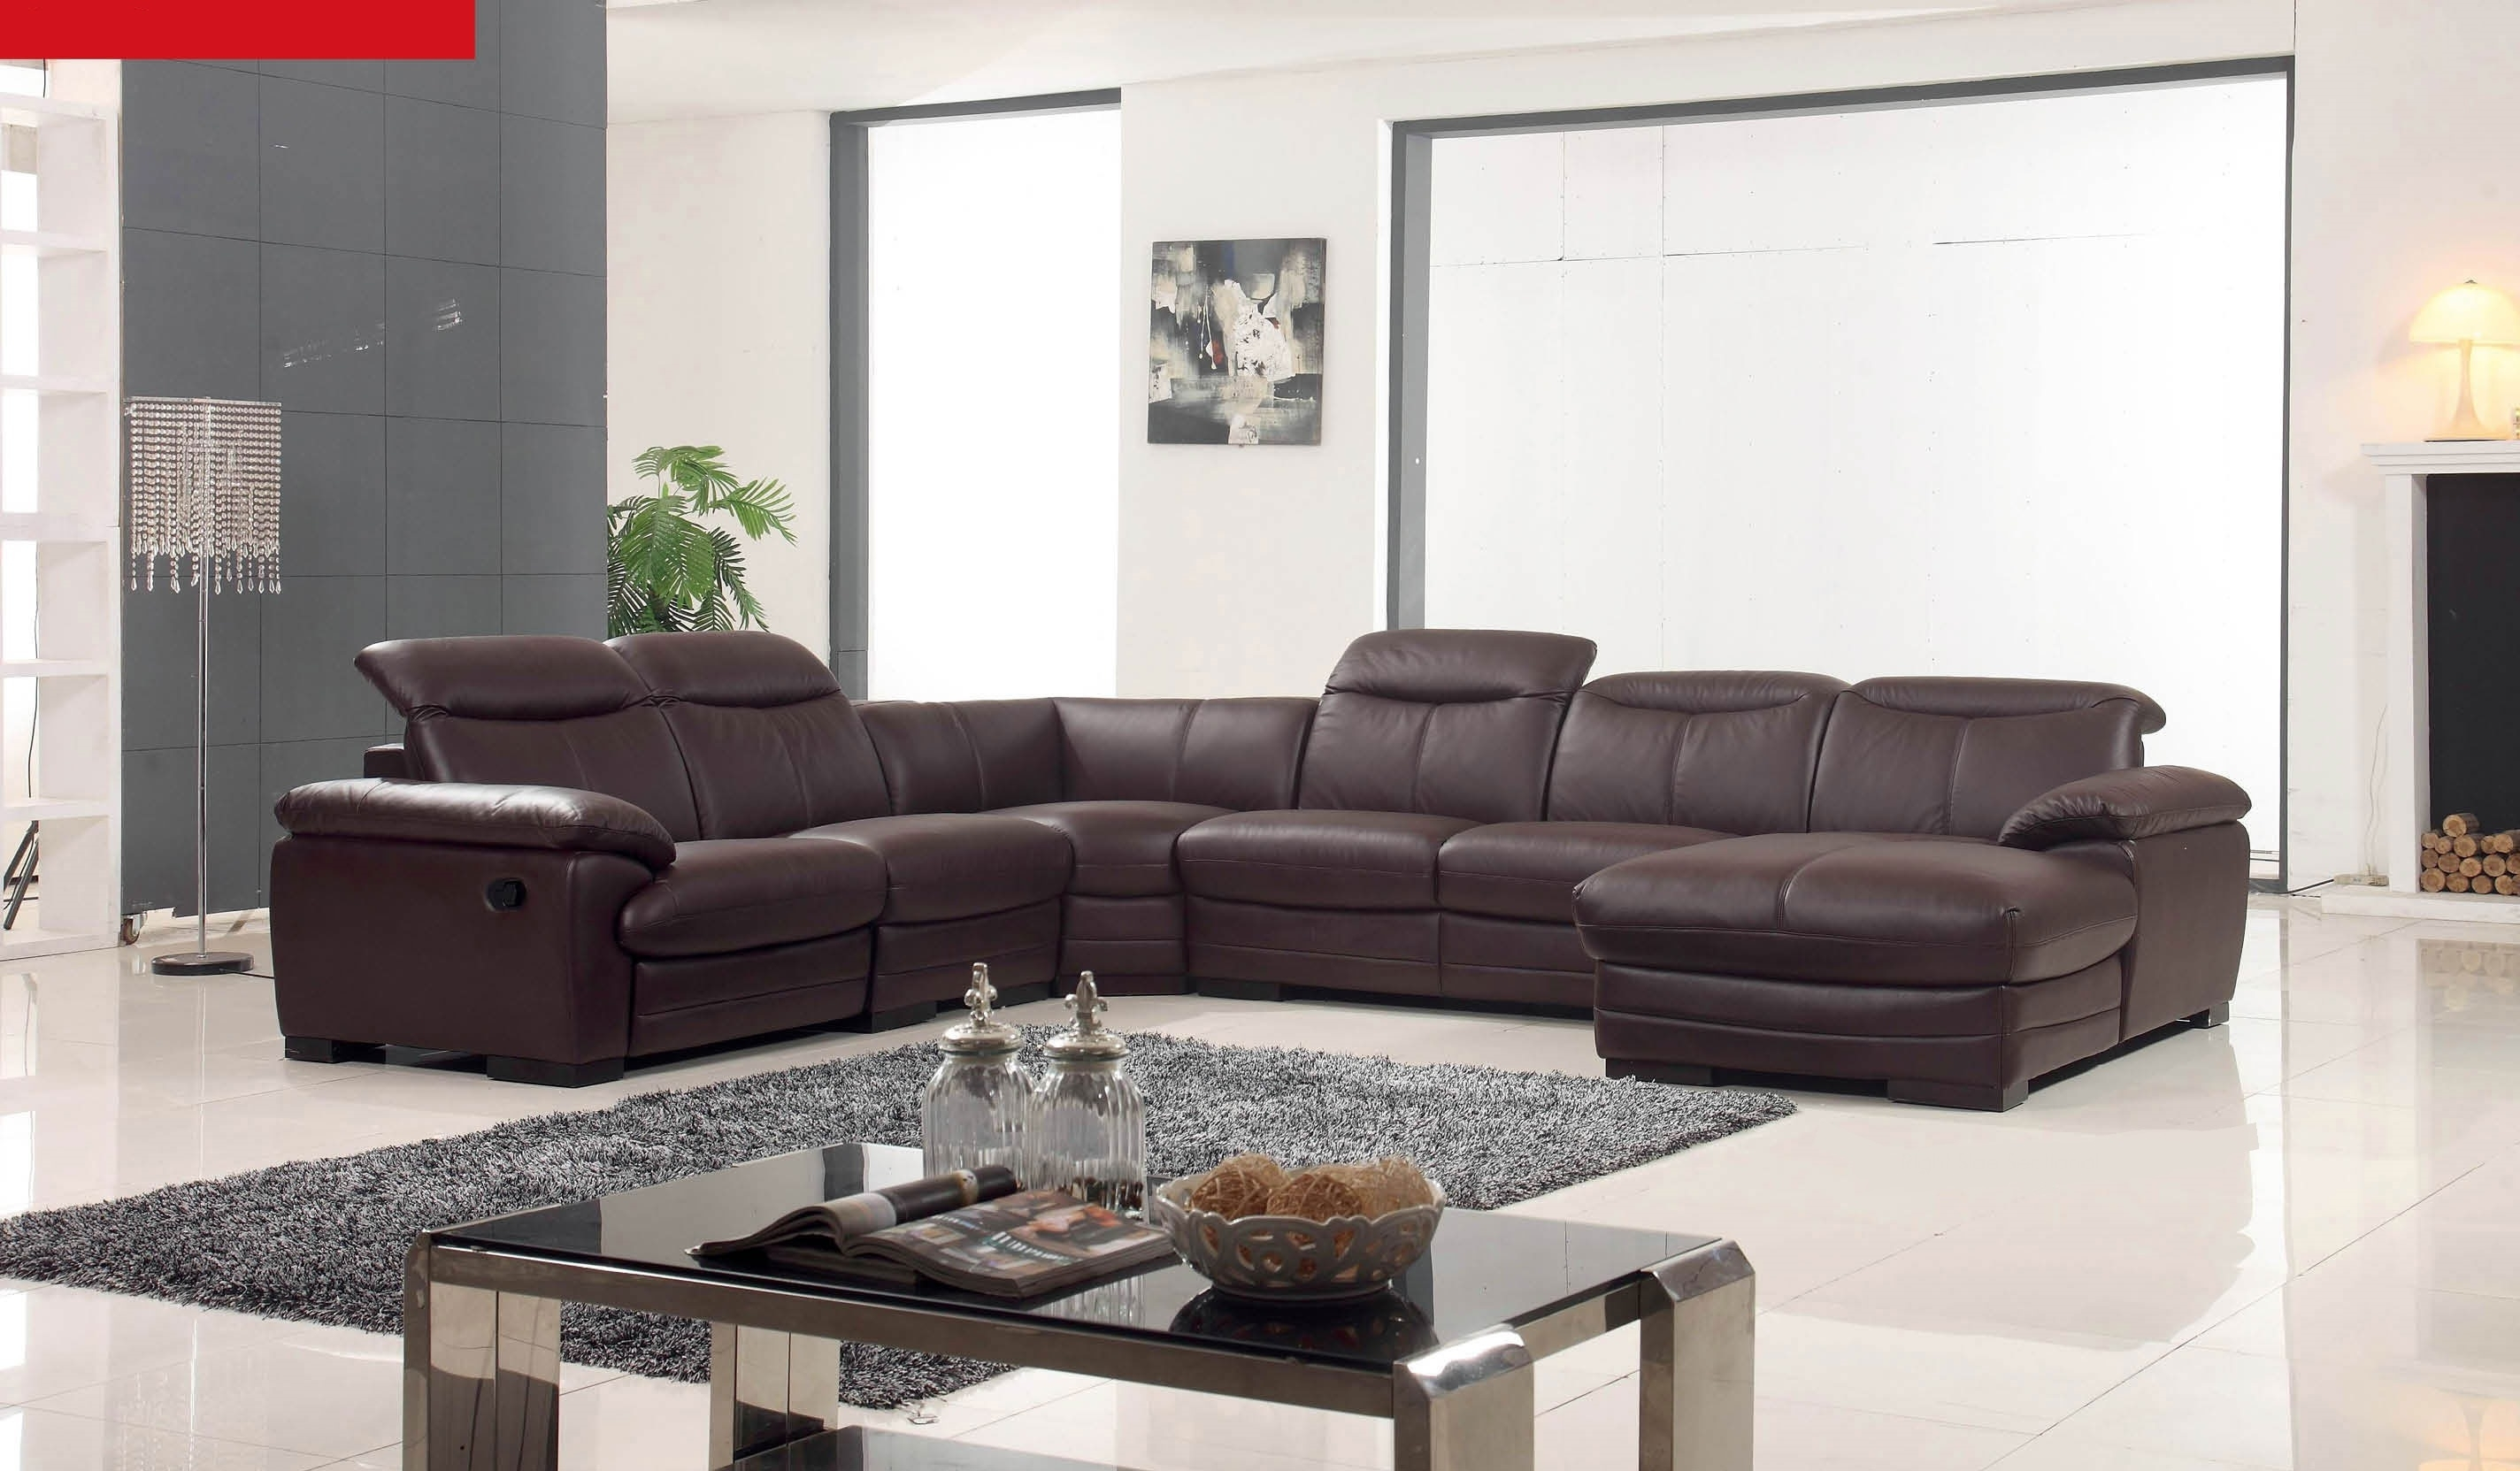 Sectional Sofas: Vermont Sectional Sofa Jp 2146 Sectional/4 – Ba In Popular Vt Sectional Sofas (View 14 of 15)